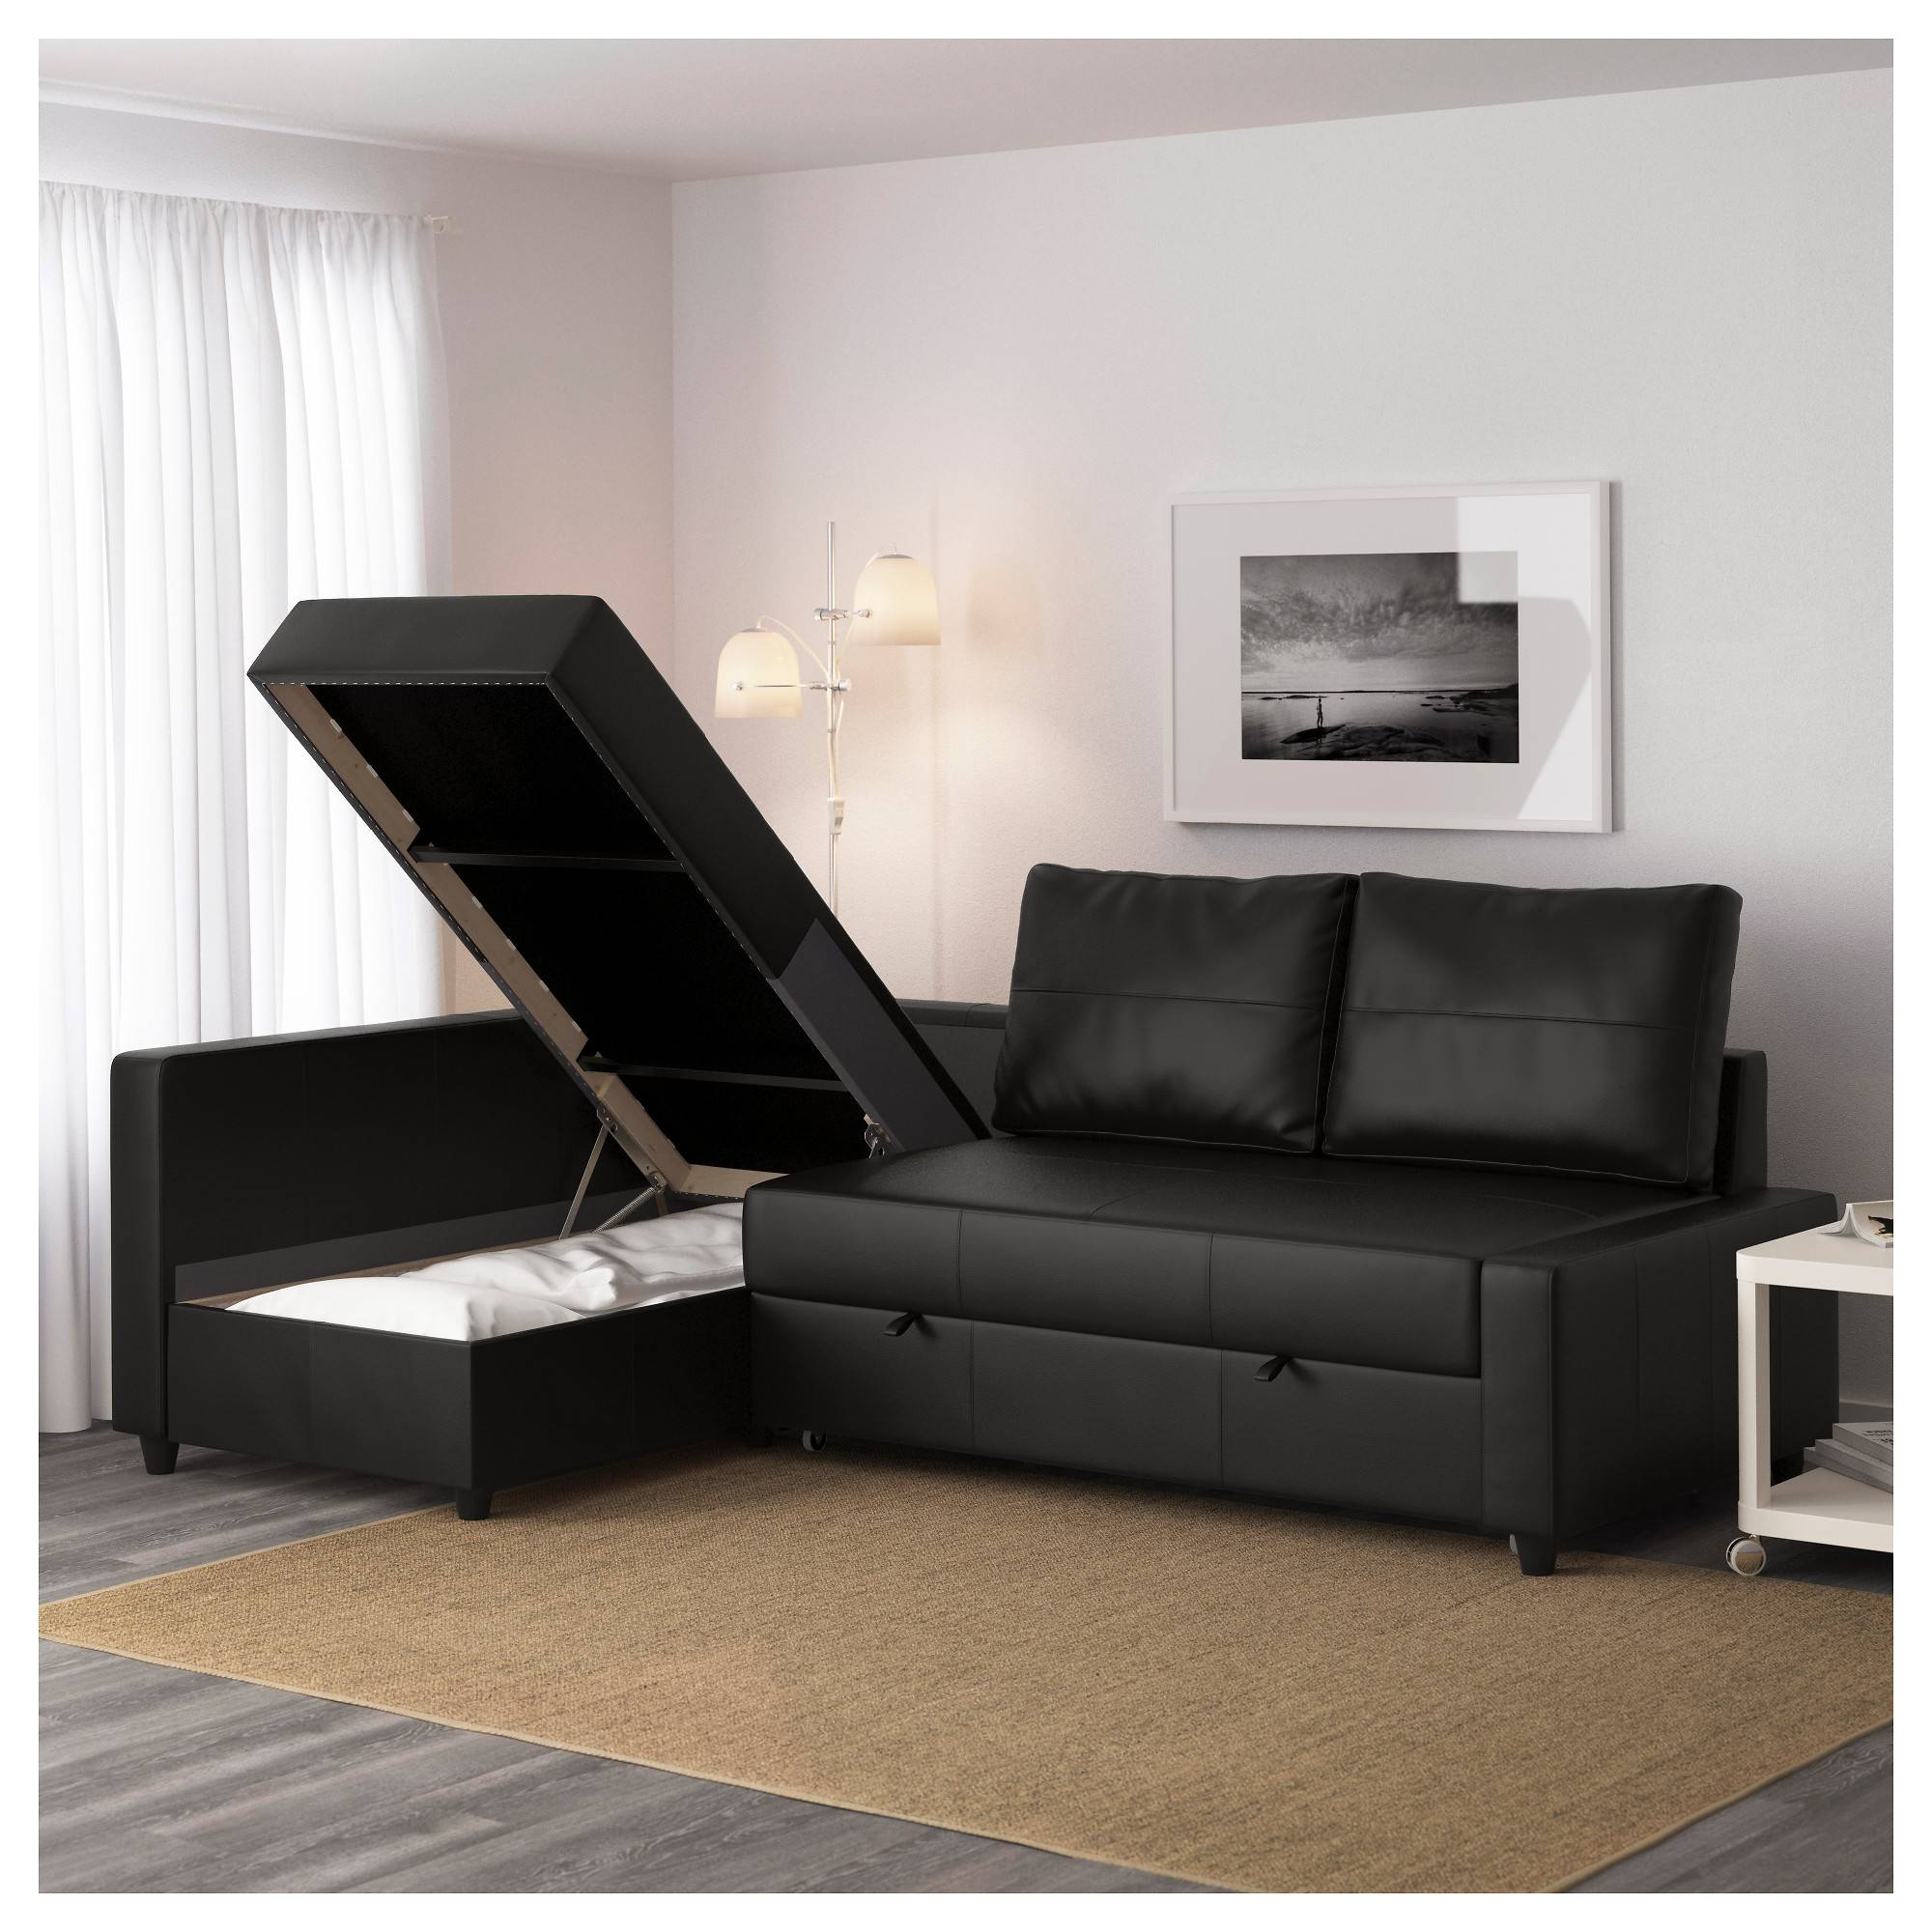 Friheten Sleeper Sectional,3 Seat W/storage - Skiftebo Dark Gray regarding Leather Storage Sofas (Image 11 of 30)